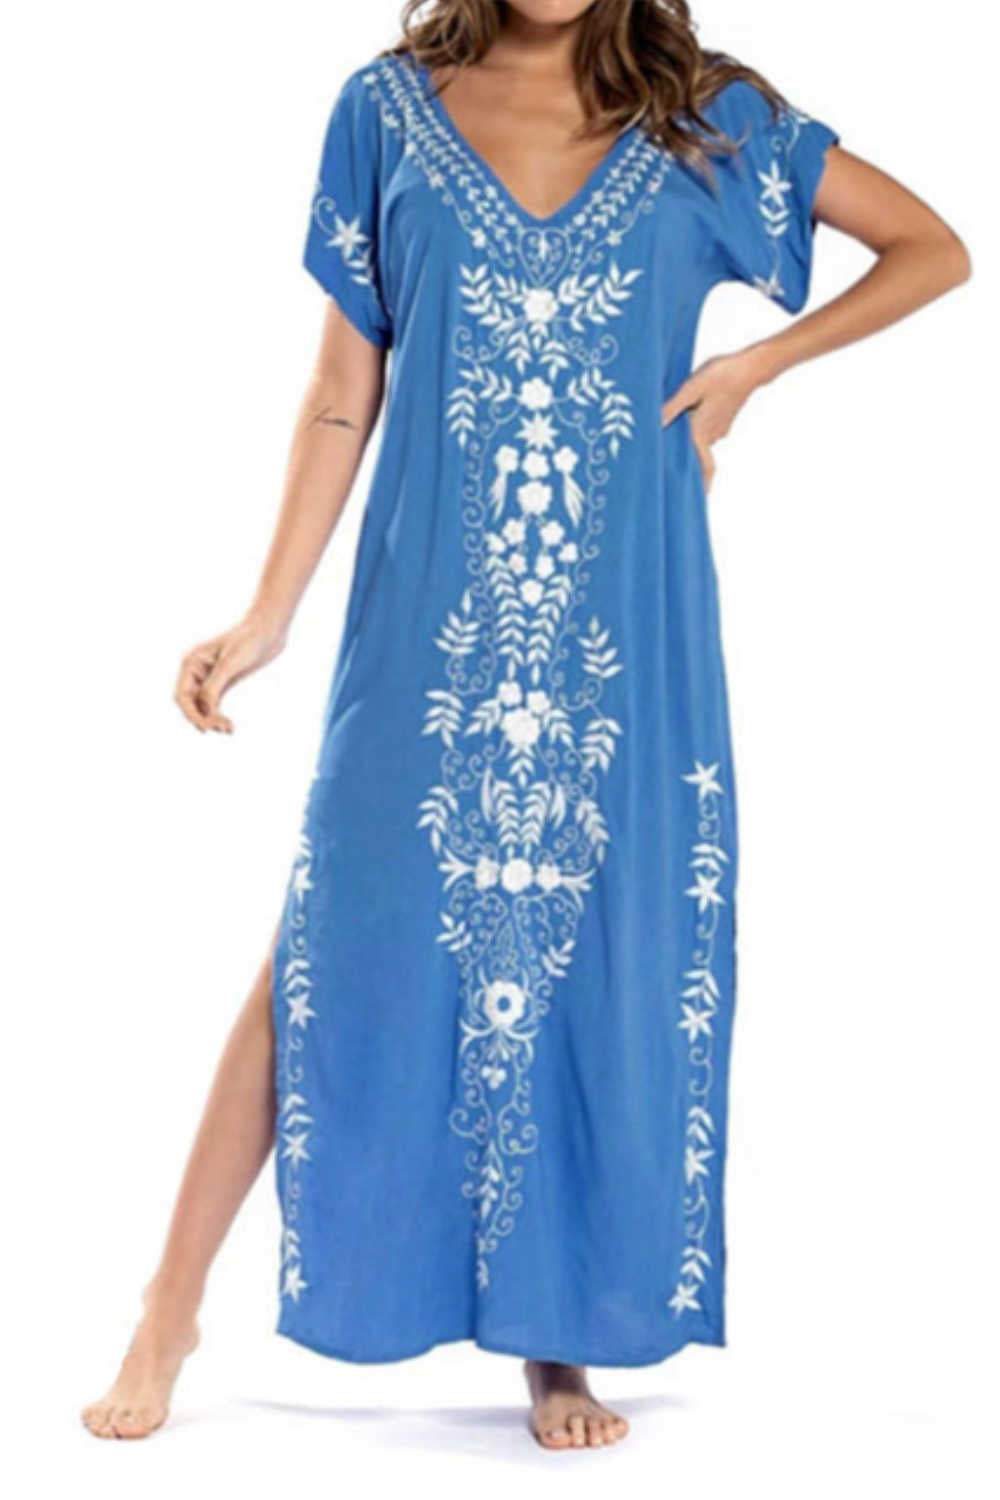 kaftan-maxi-dress-blue-white-embroidered-cotton